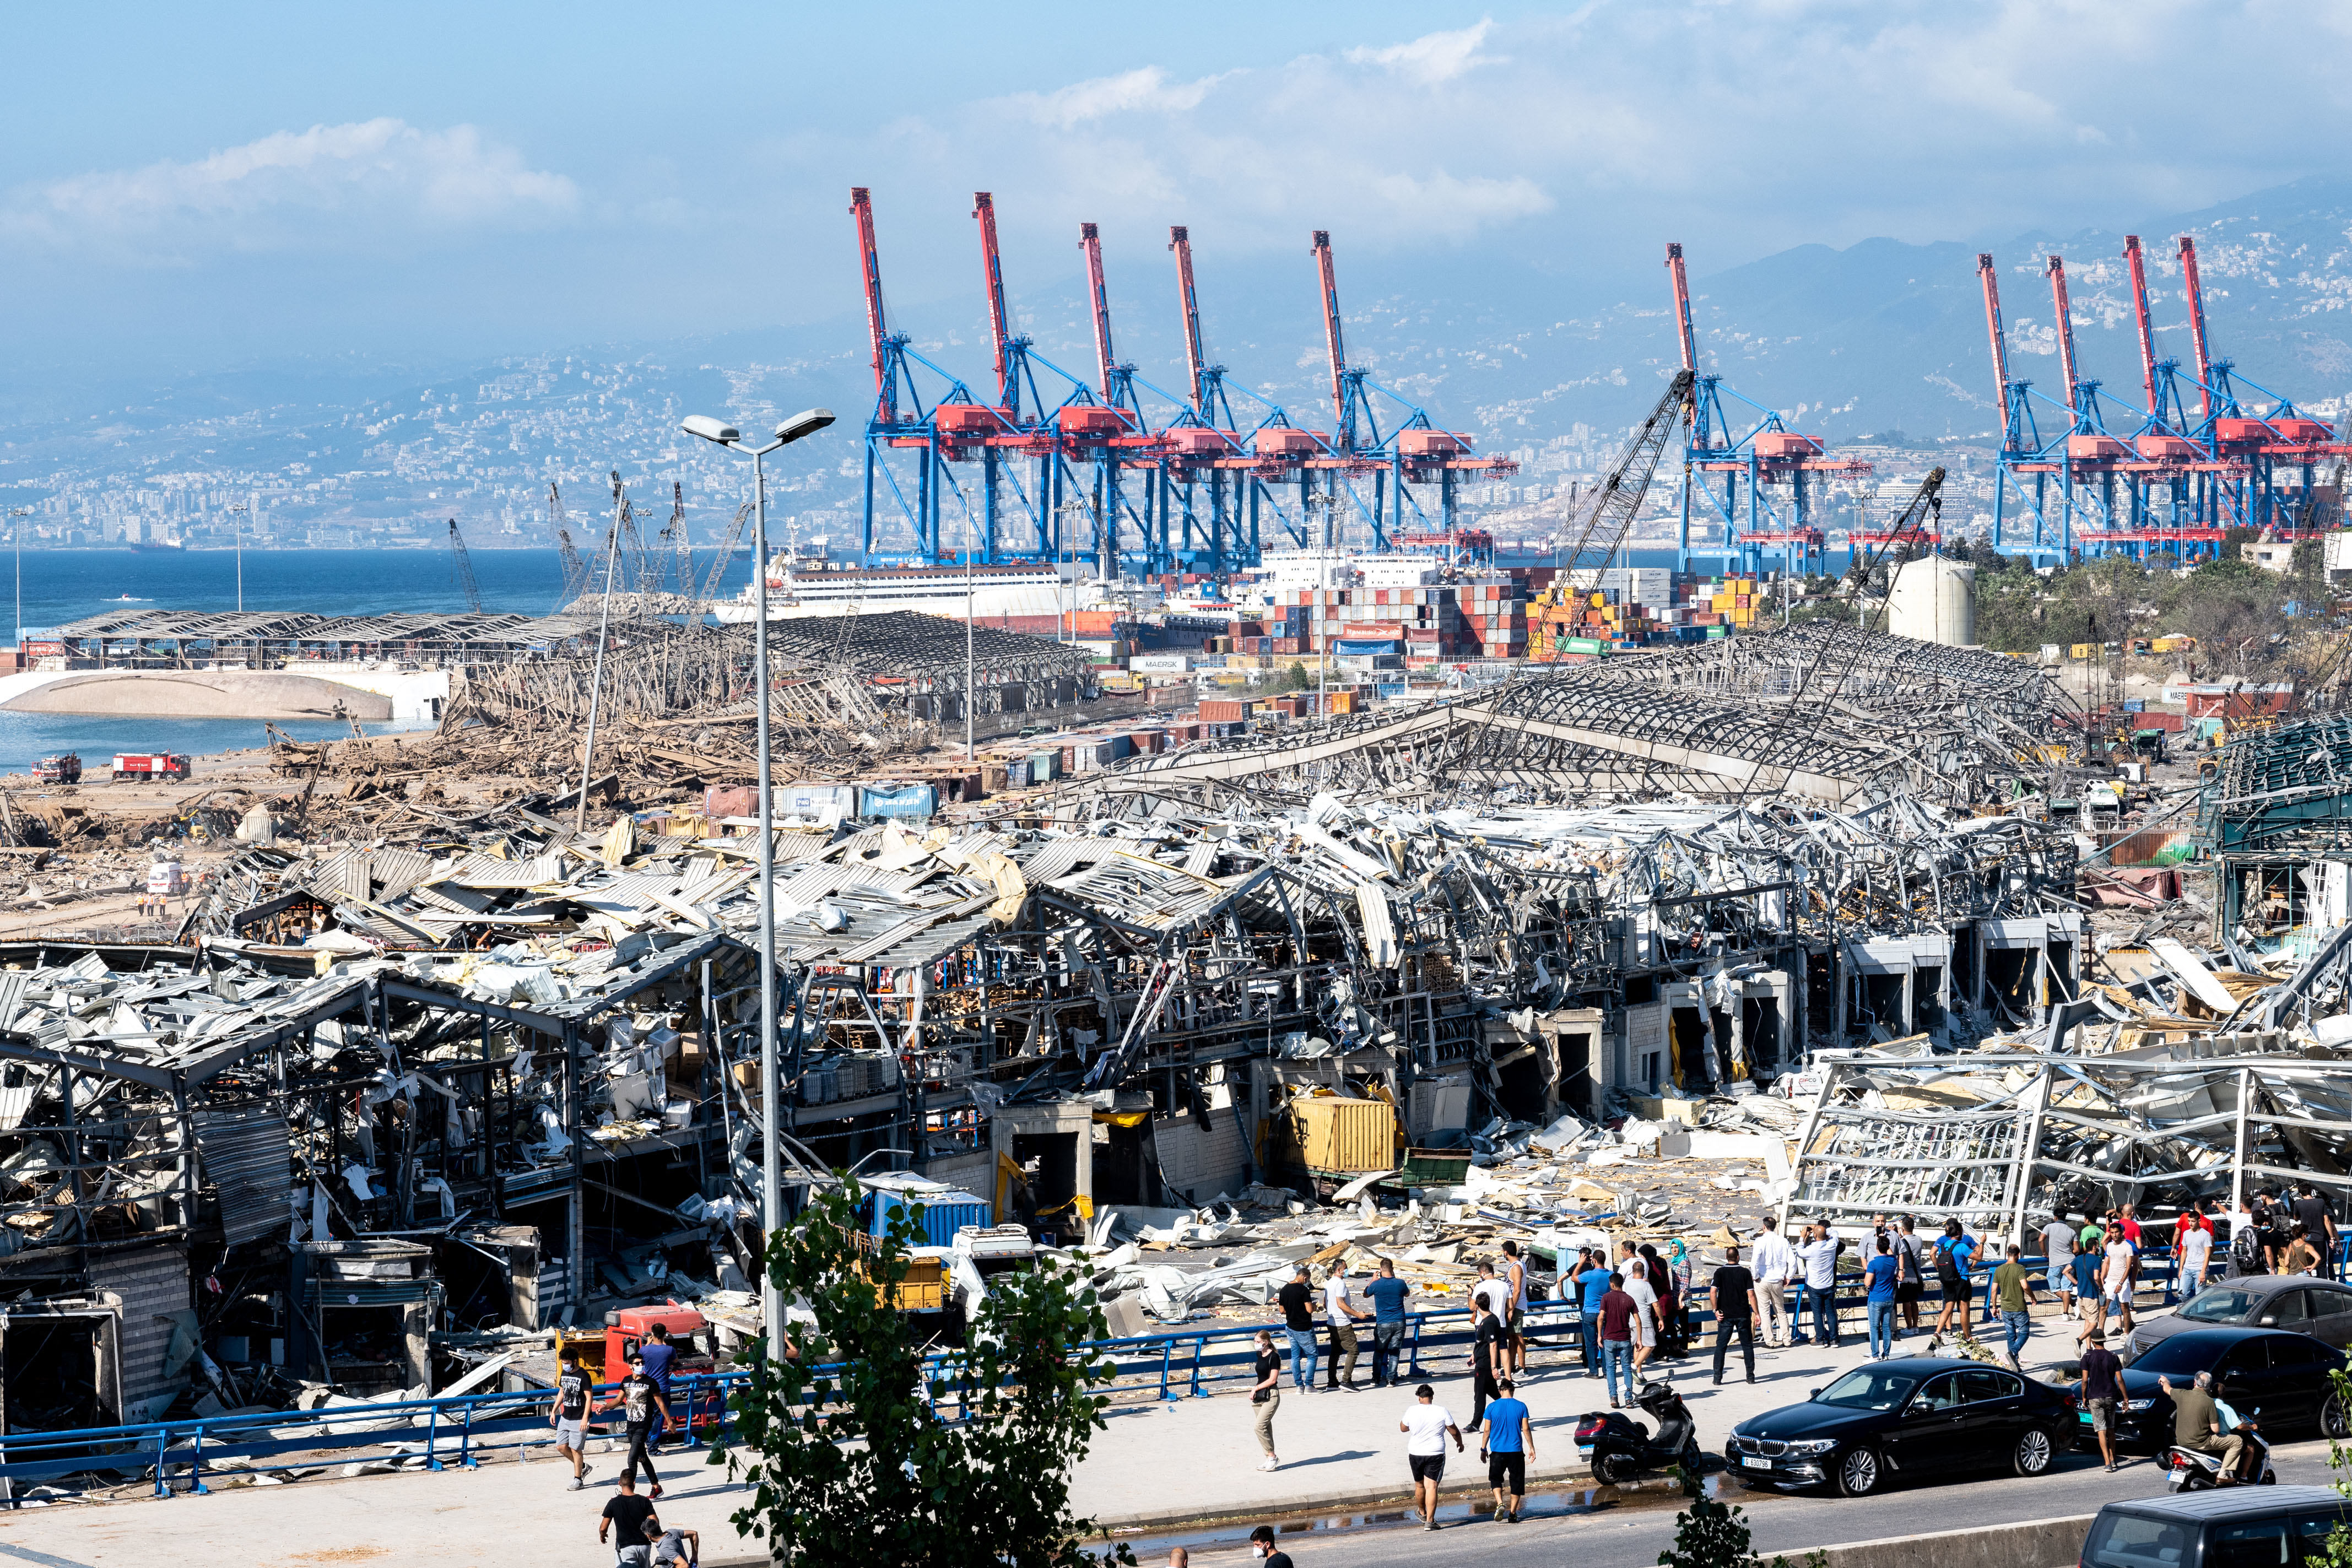 The destruction at the port of Beirut, as seen the day after a huge unknown blast.